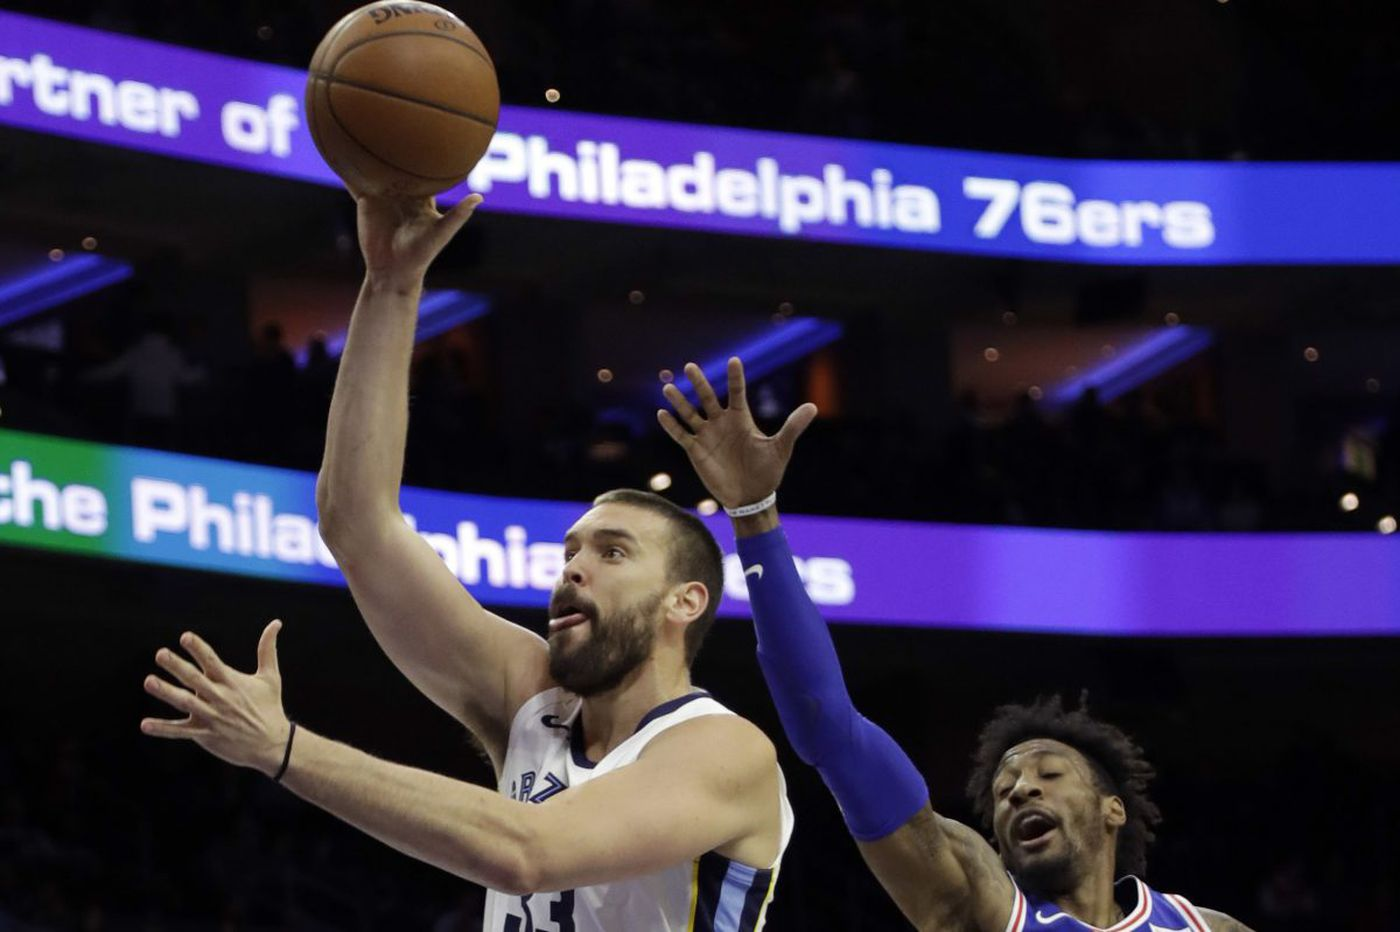 Sixers 119, Grizzlies 105: Memphis, Gasol provide little resistance to the Sixers